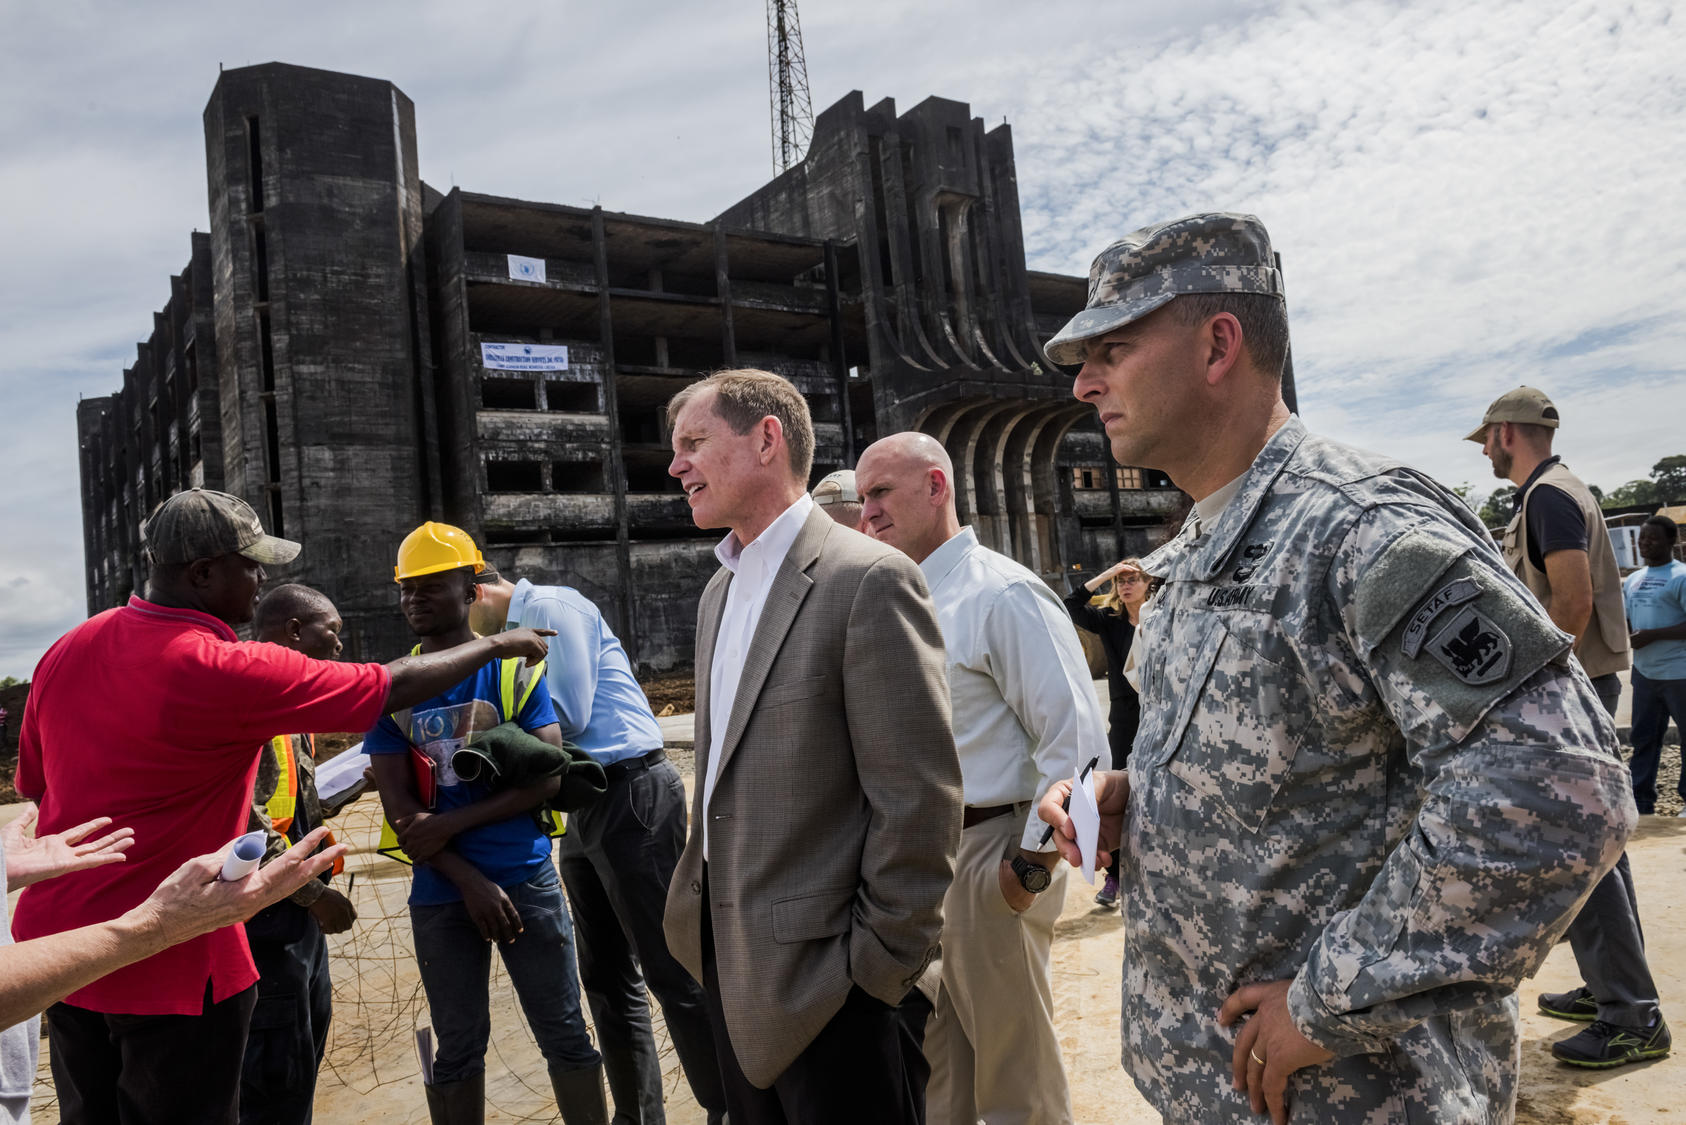 The former U.S. assistant secretary of defense for special operations and low-intensity conflict, and a U.S. delegation tour a construction site of an Ebola treatment center in Liberia, Oct. 2014. Photo Courtesy of The New York Times/Daniel Berehulak